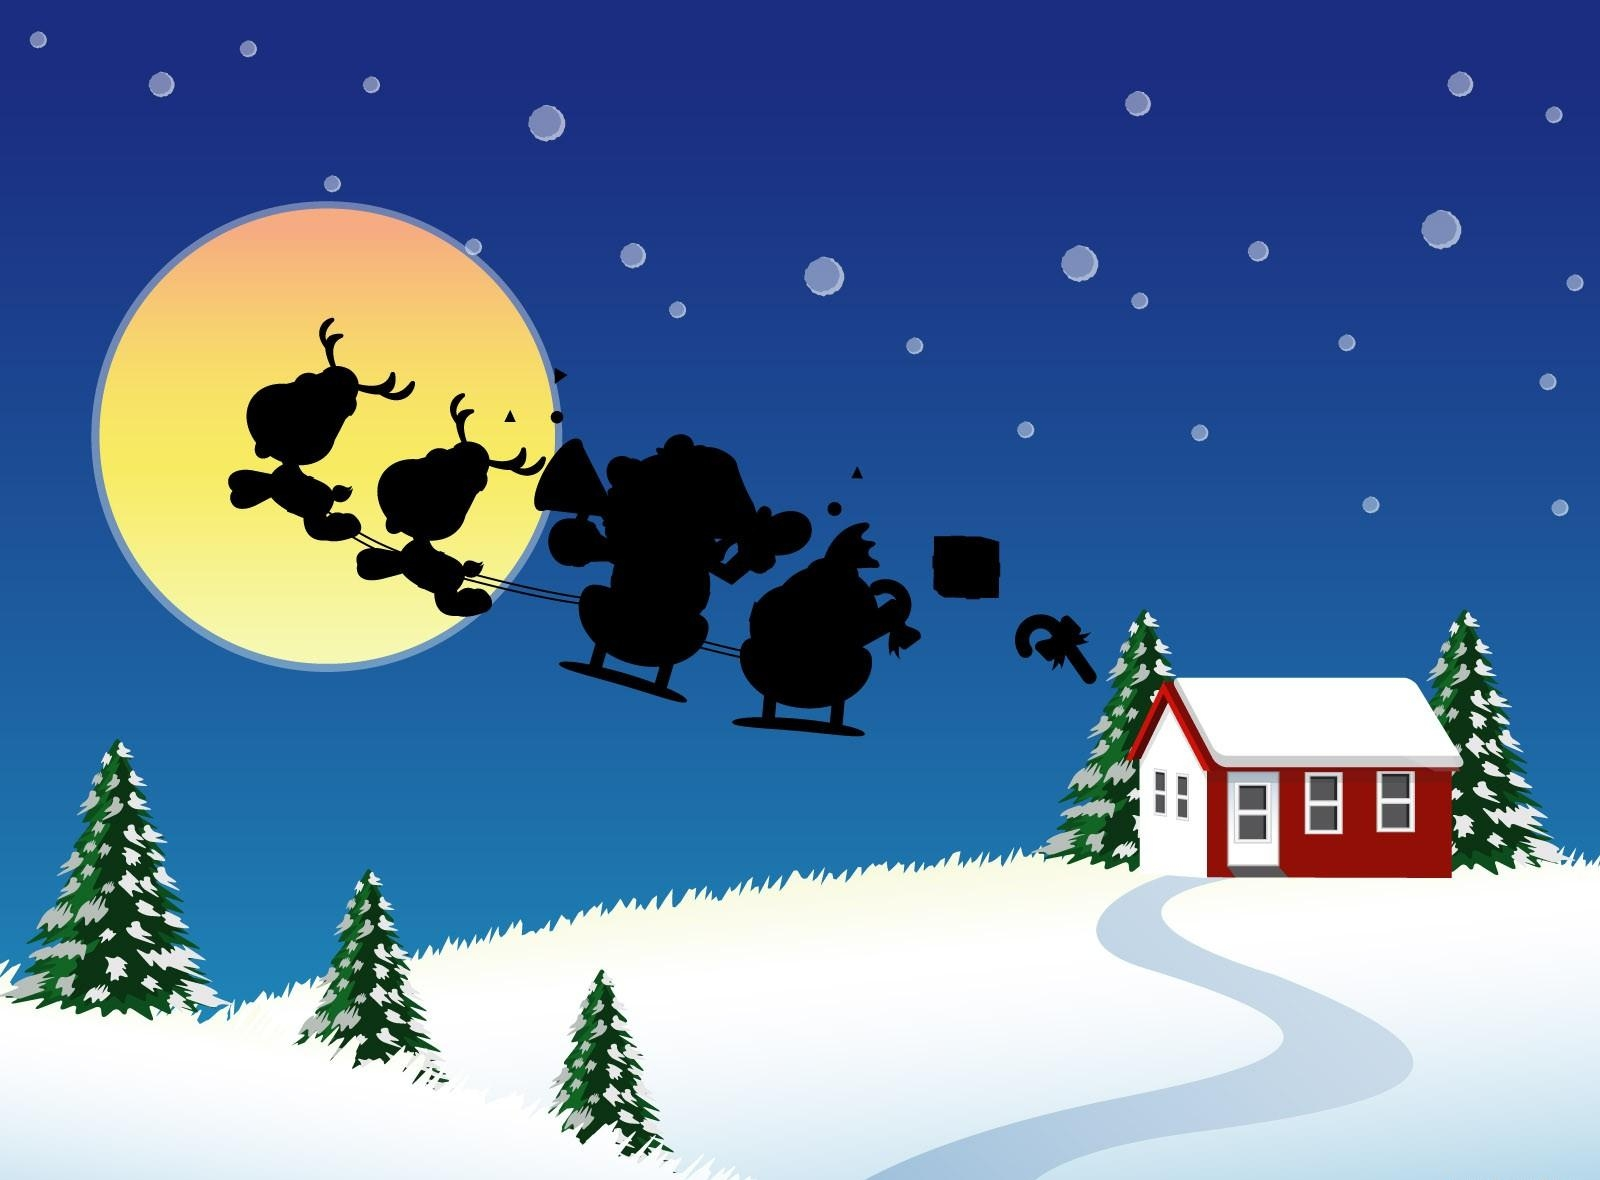 145153 download wallpaper Holidays, Santa Claus, Christmas, Sleigh, Sledge, Flight, Moon, House, Fir-Trees screensavers and pictures for free